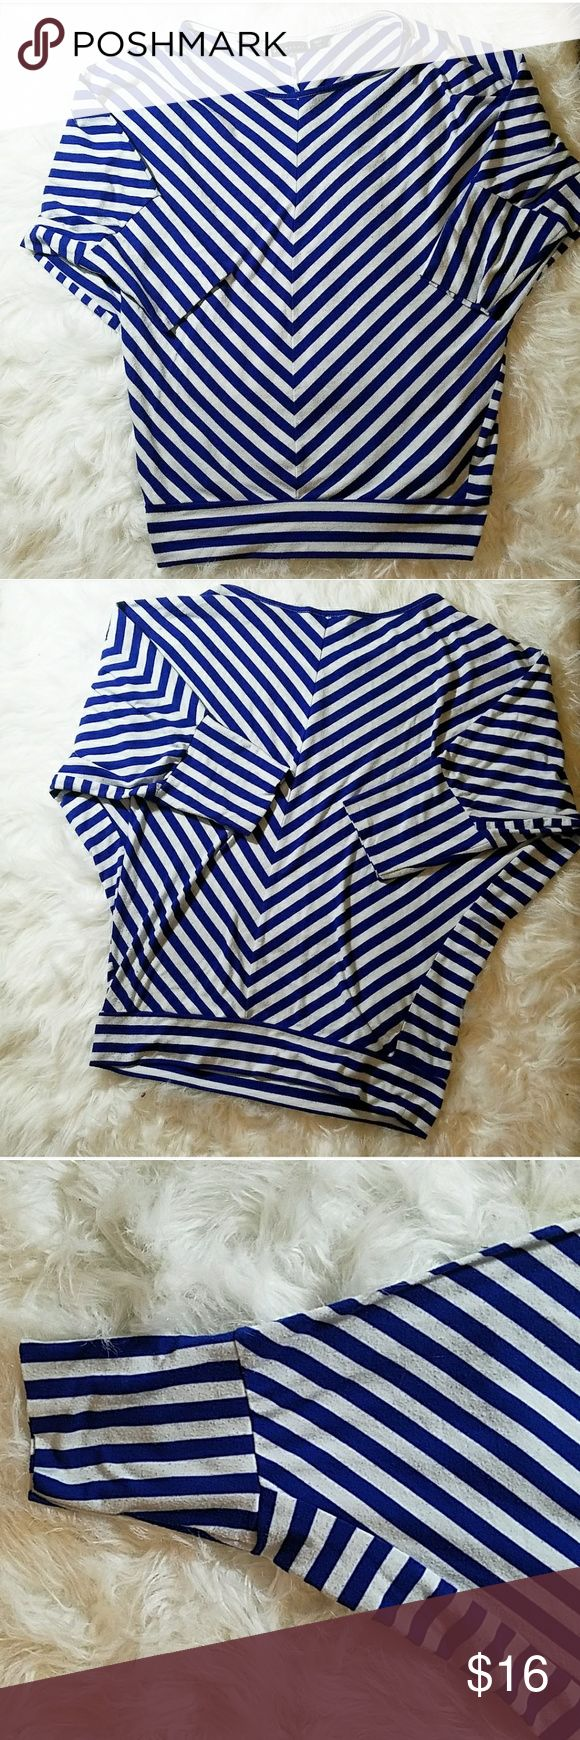 Blue & White Stripe Top with batwing sleeves Blue & White Striped batwing sleeve top! Gently used. Metaphor Tops Blouses